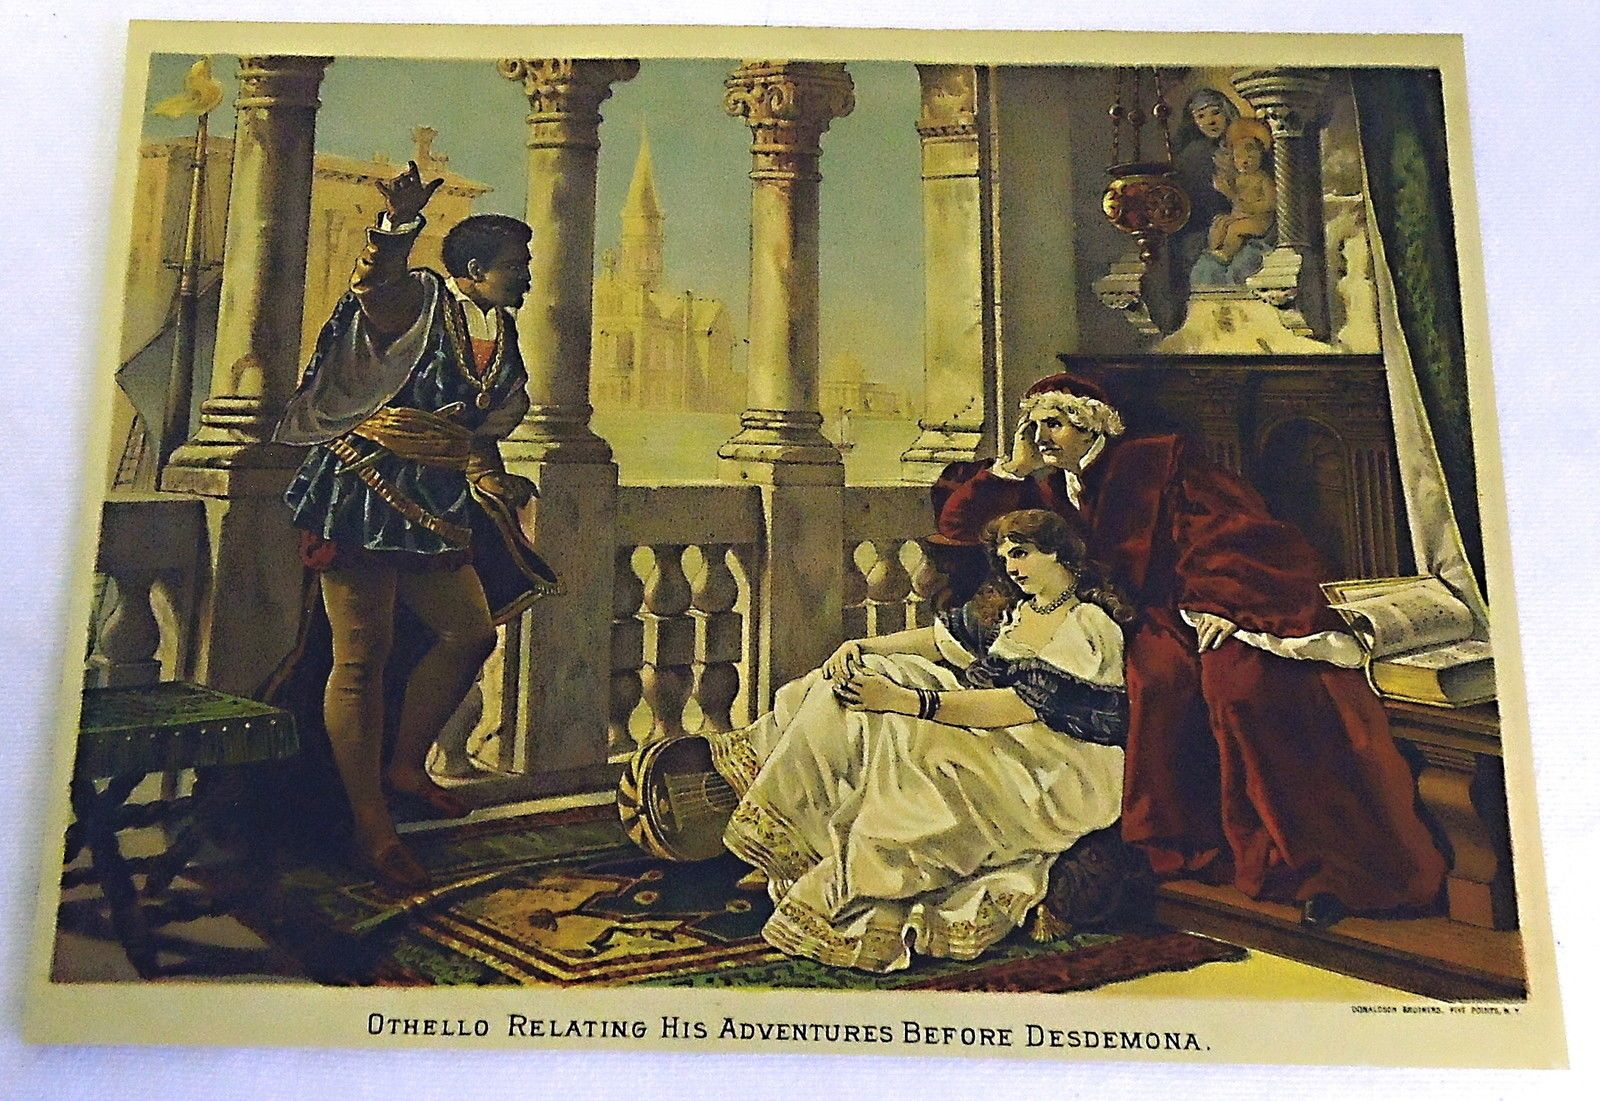 1882 Color Magazine Engraving Othello Relating His Adventures Before Desdemona Not A Photocopy Or More Recent Reproduction 33 00 Painting Art Engraving